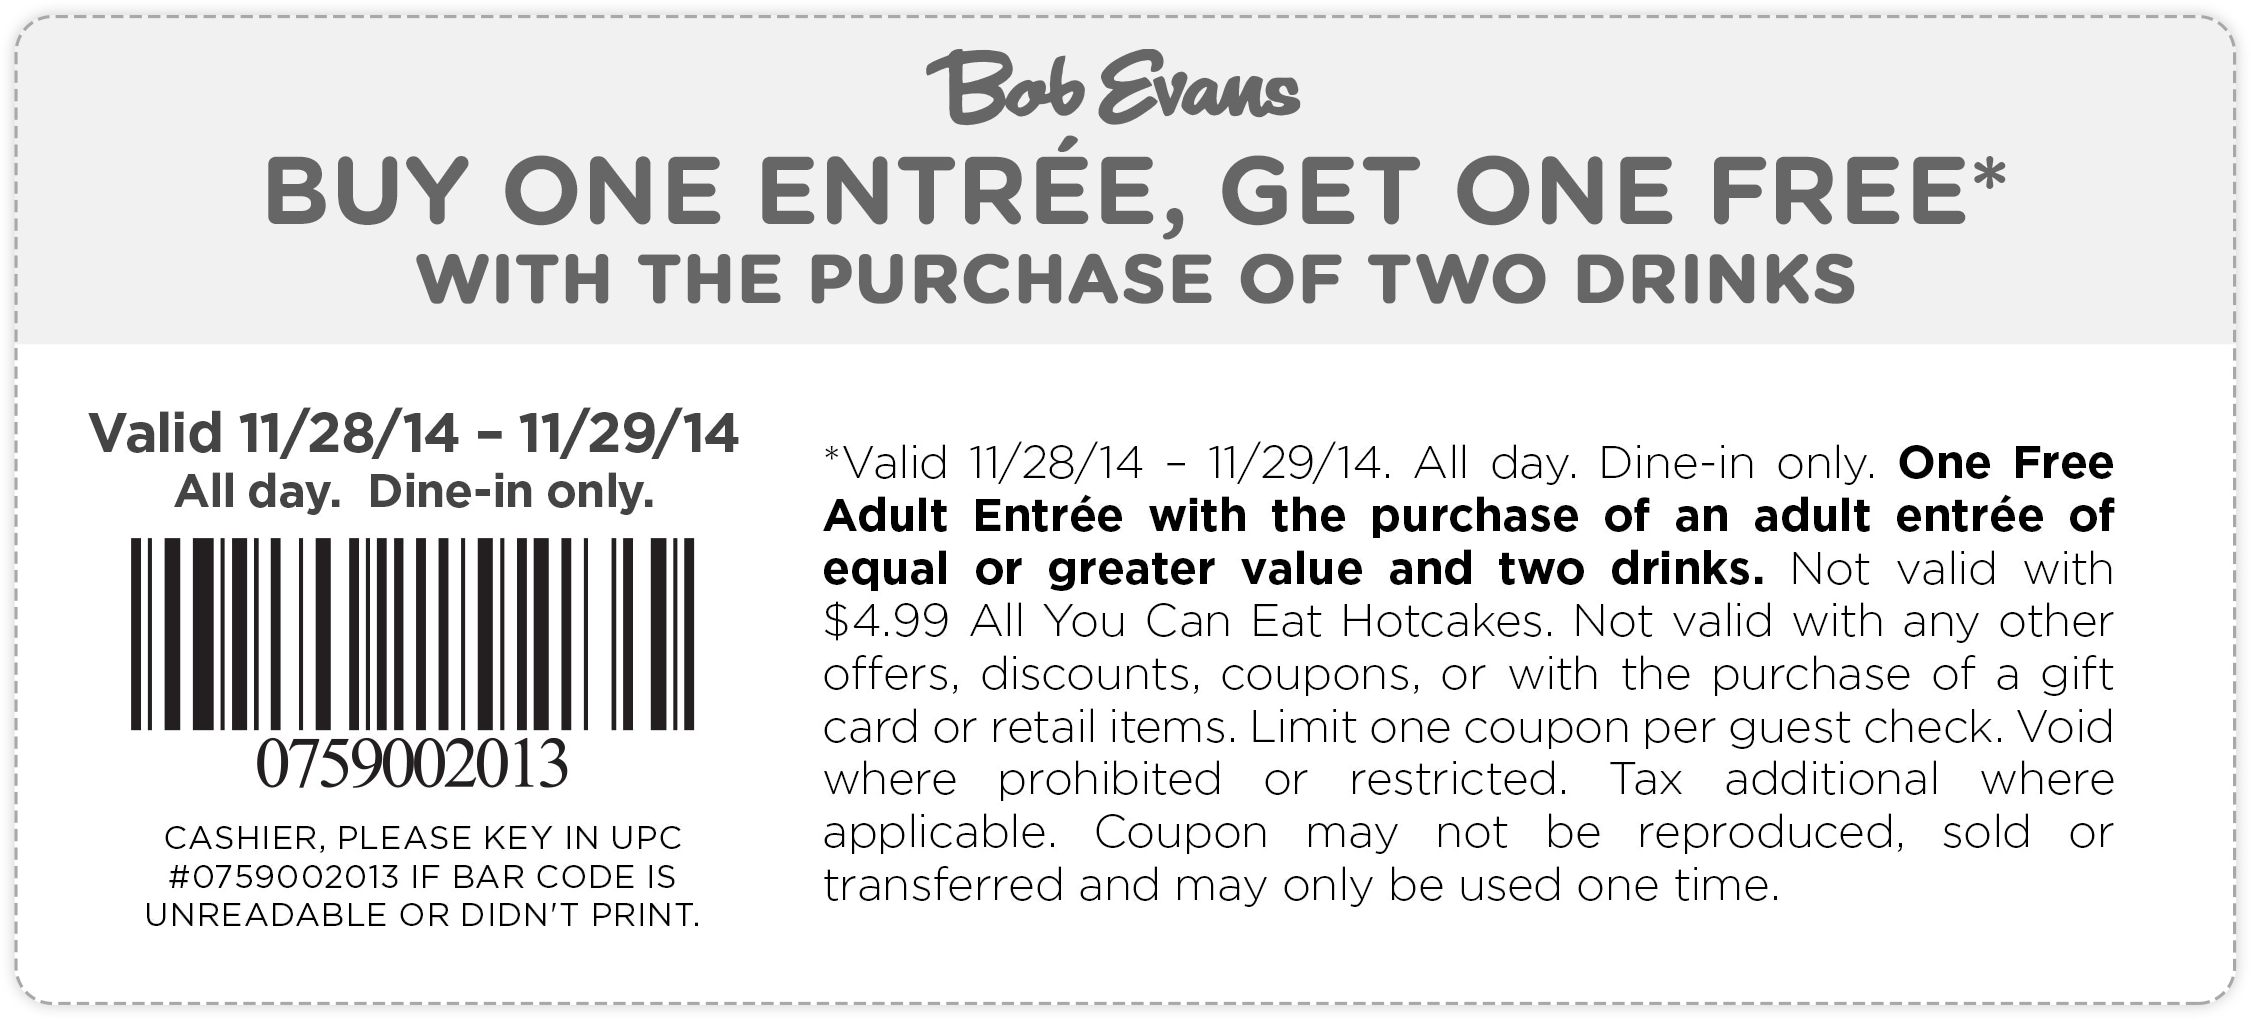 Bob Evans Coupon May 2017 Second entree free all day at Bob Evans